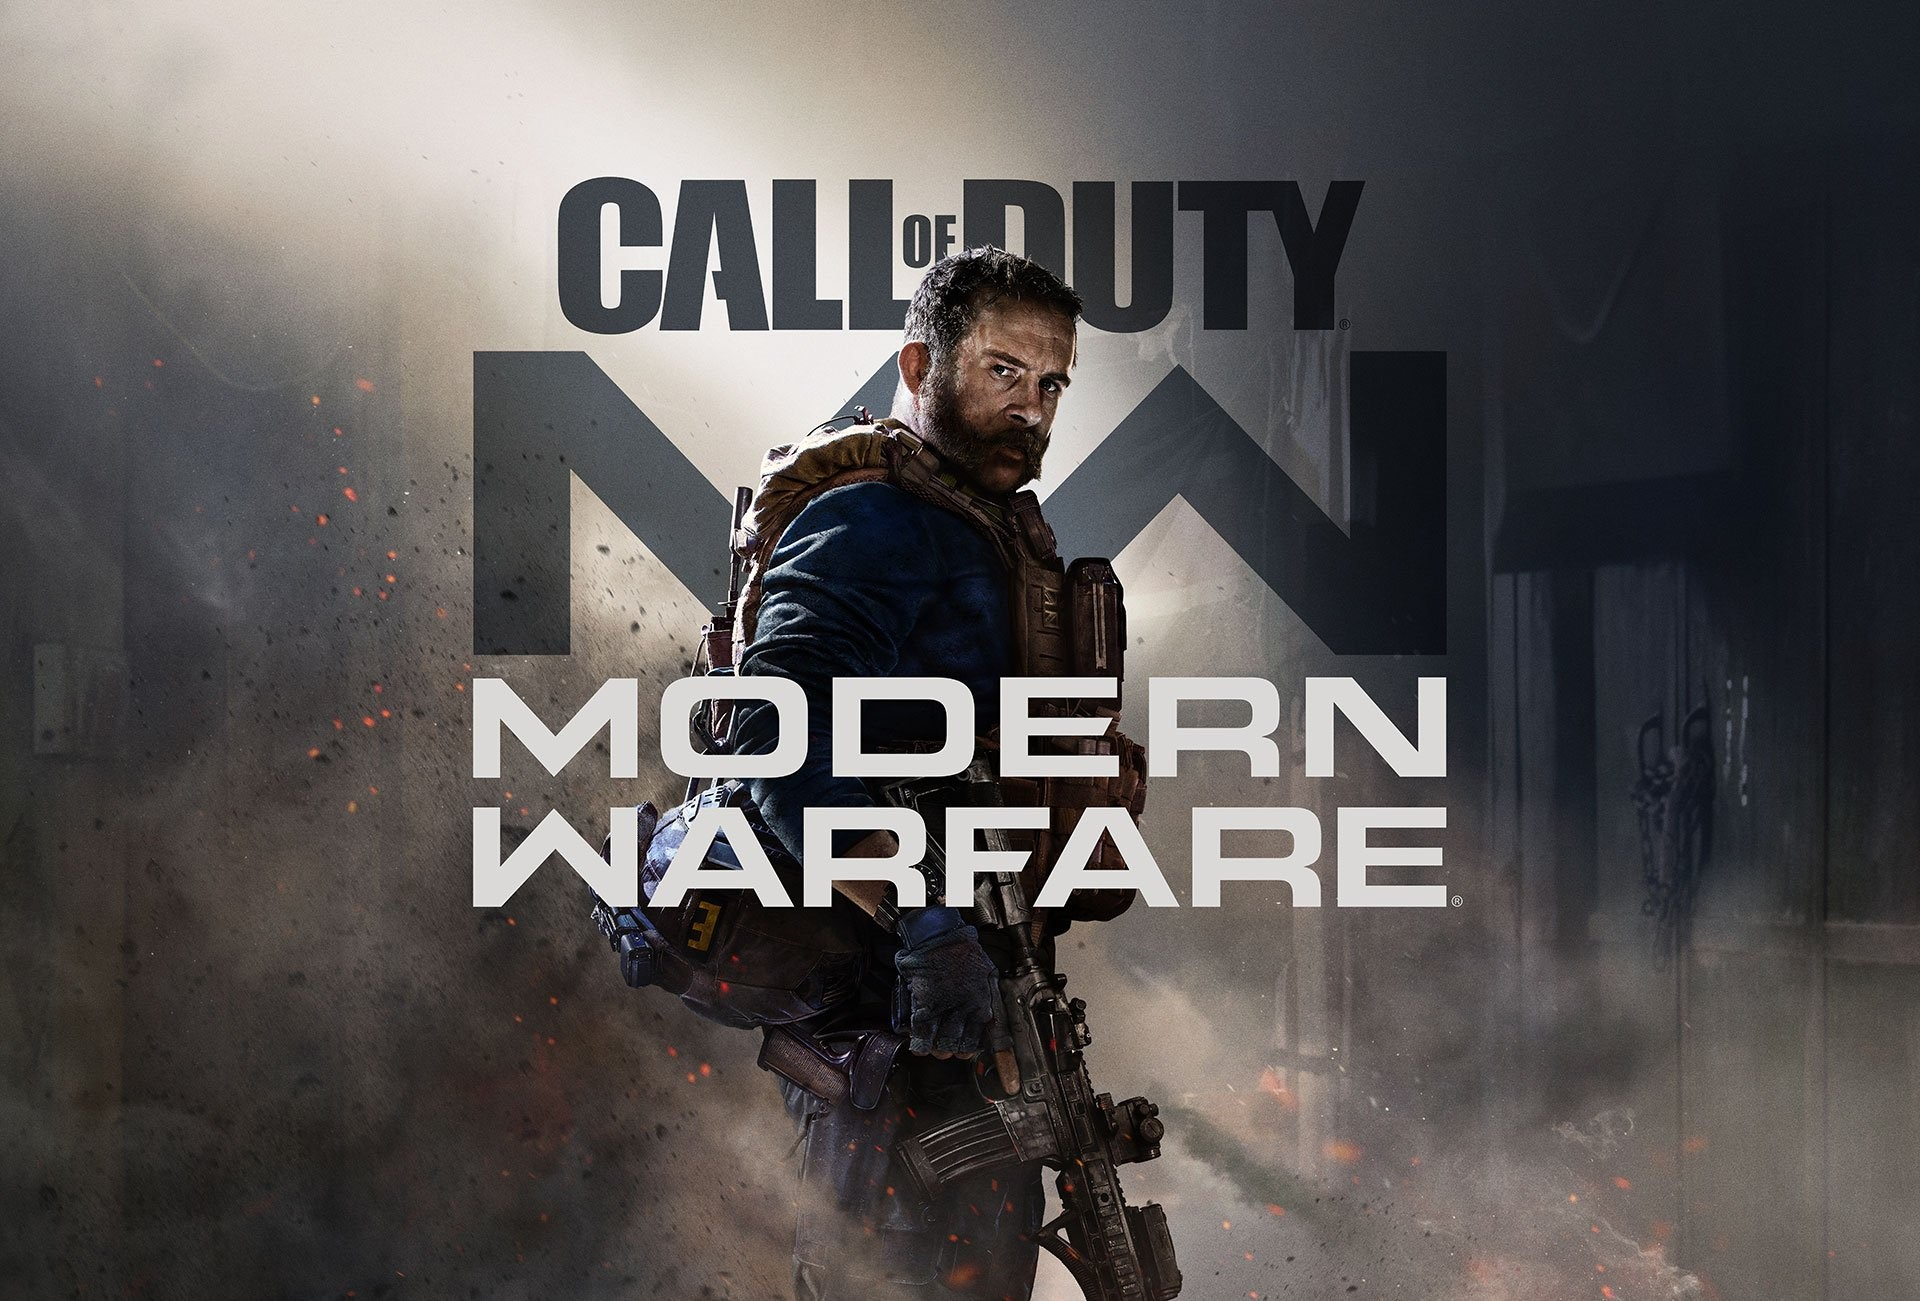 call-of-duty-moder-warefare